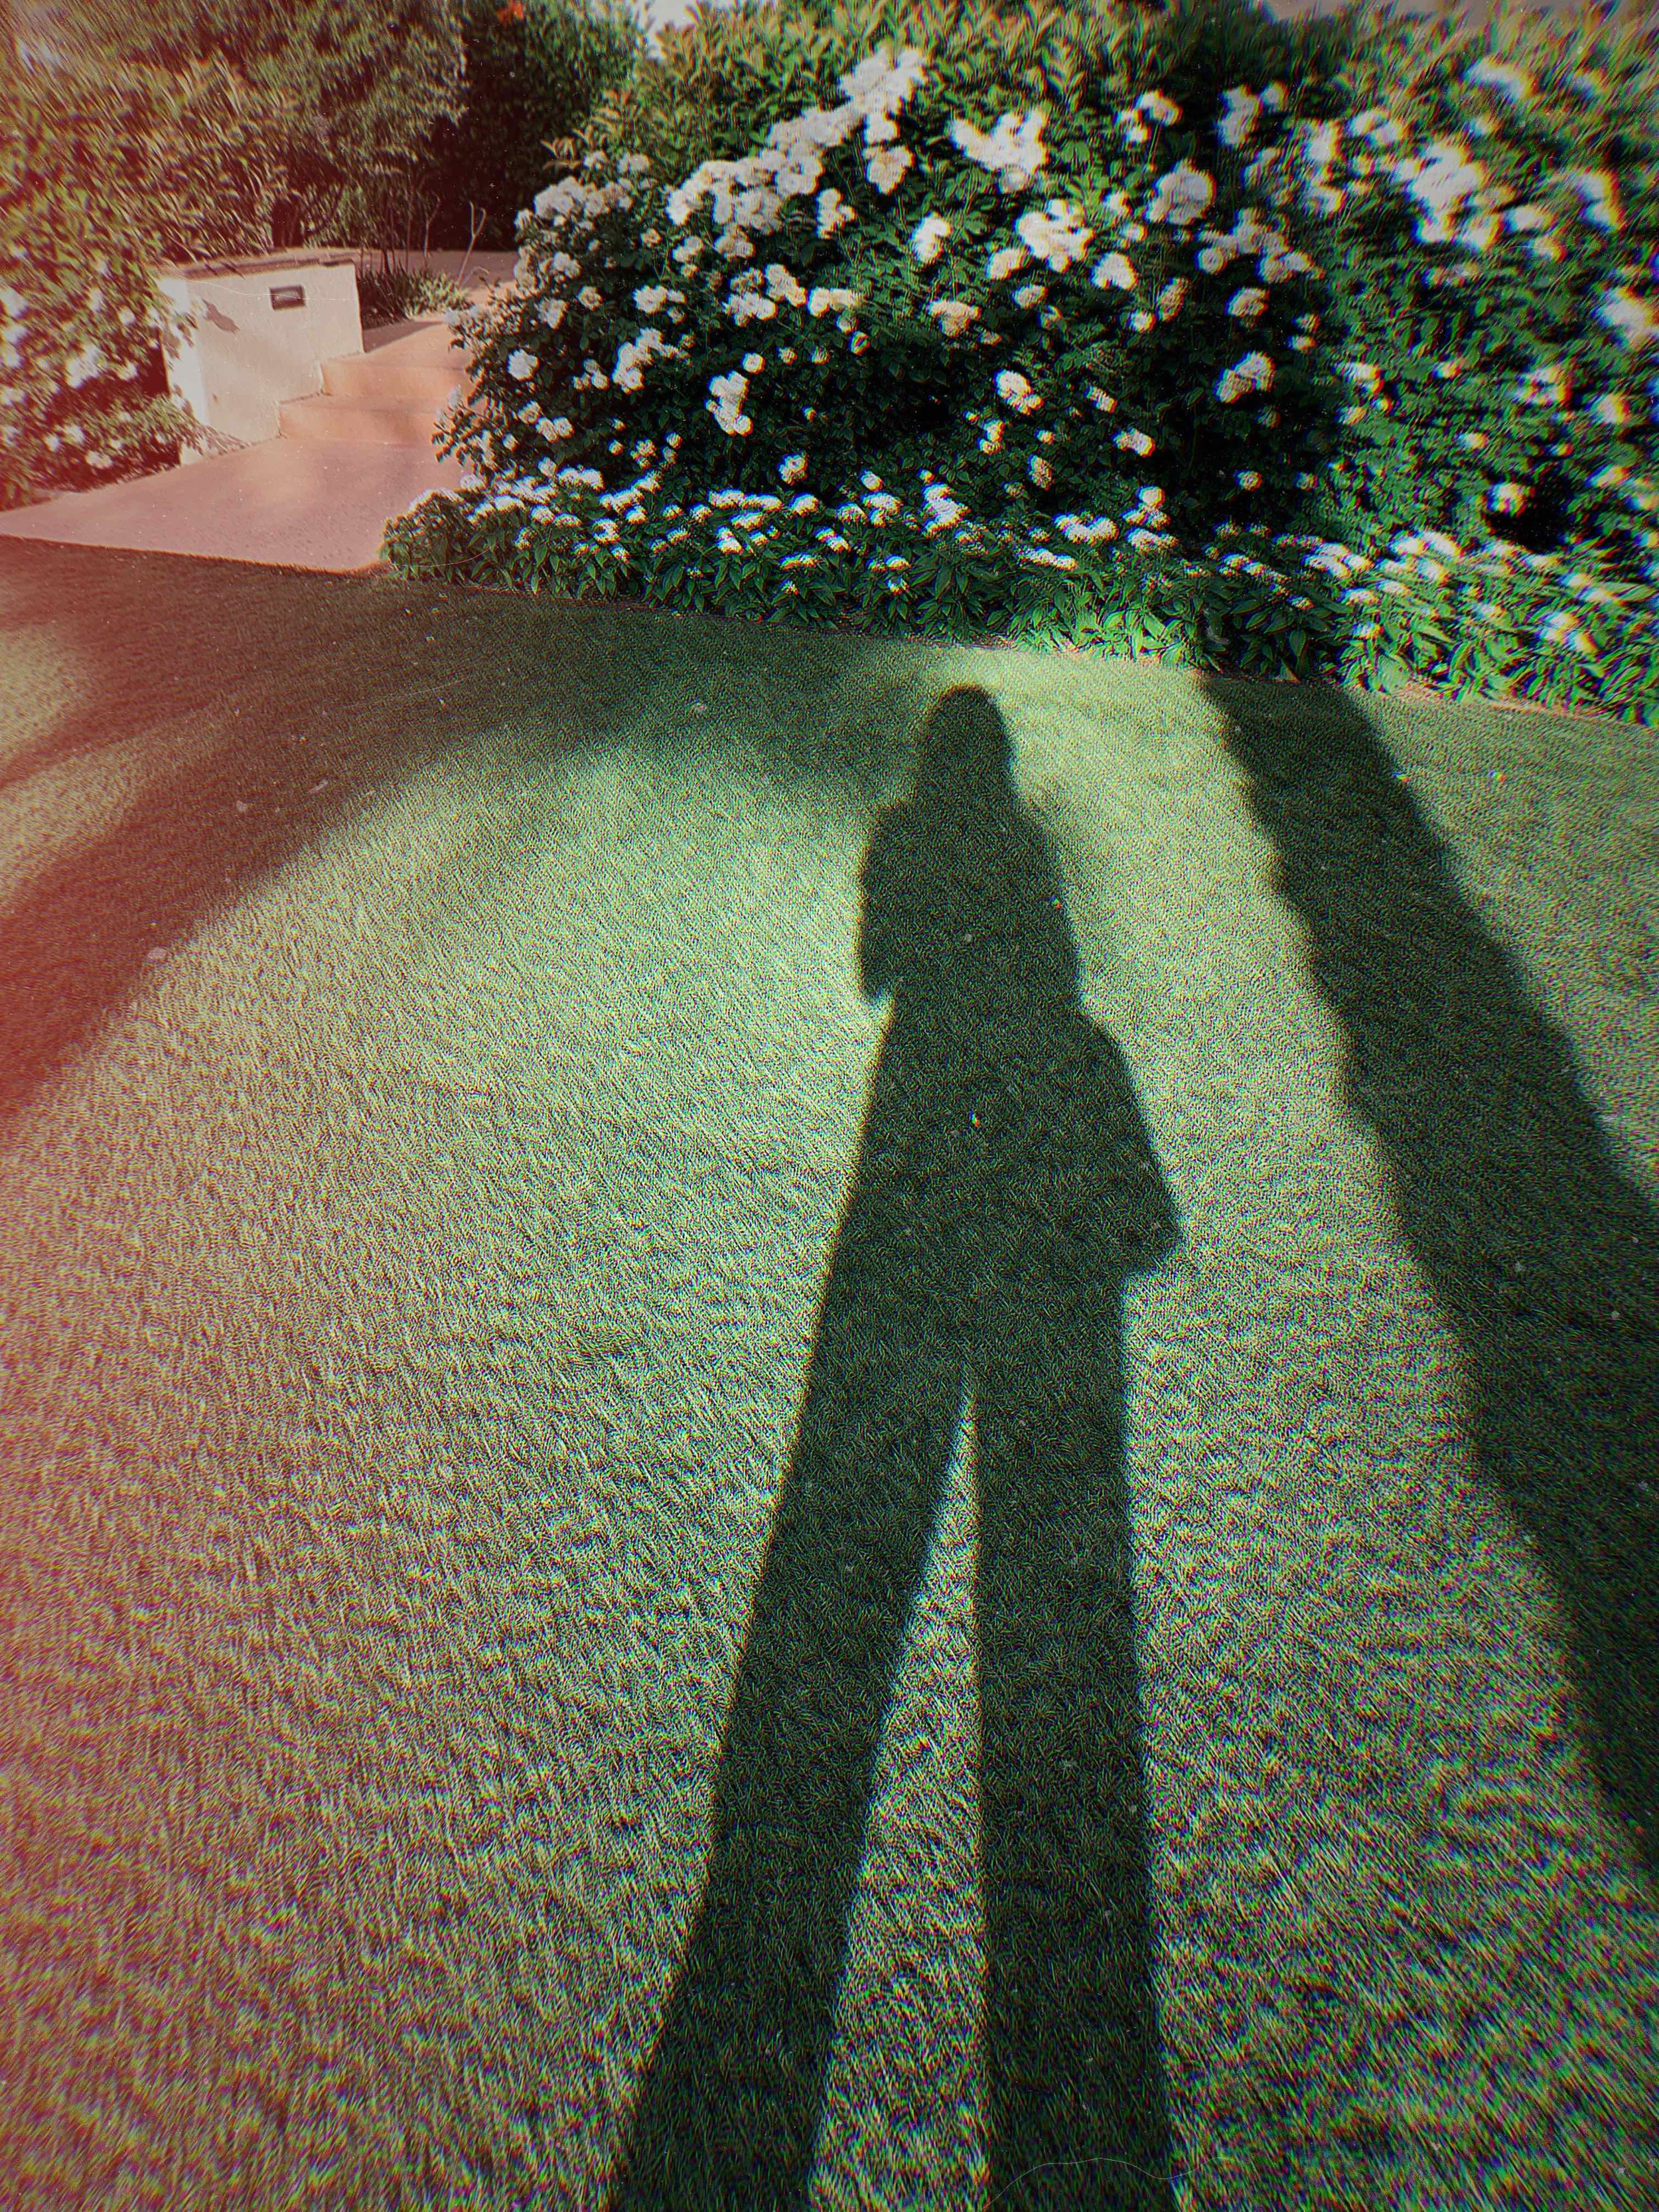 shadow behavior, carl jung, psychology, female empowerment, shadow picture